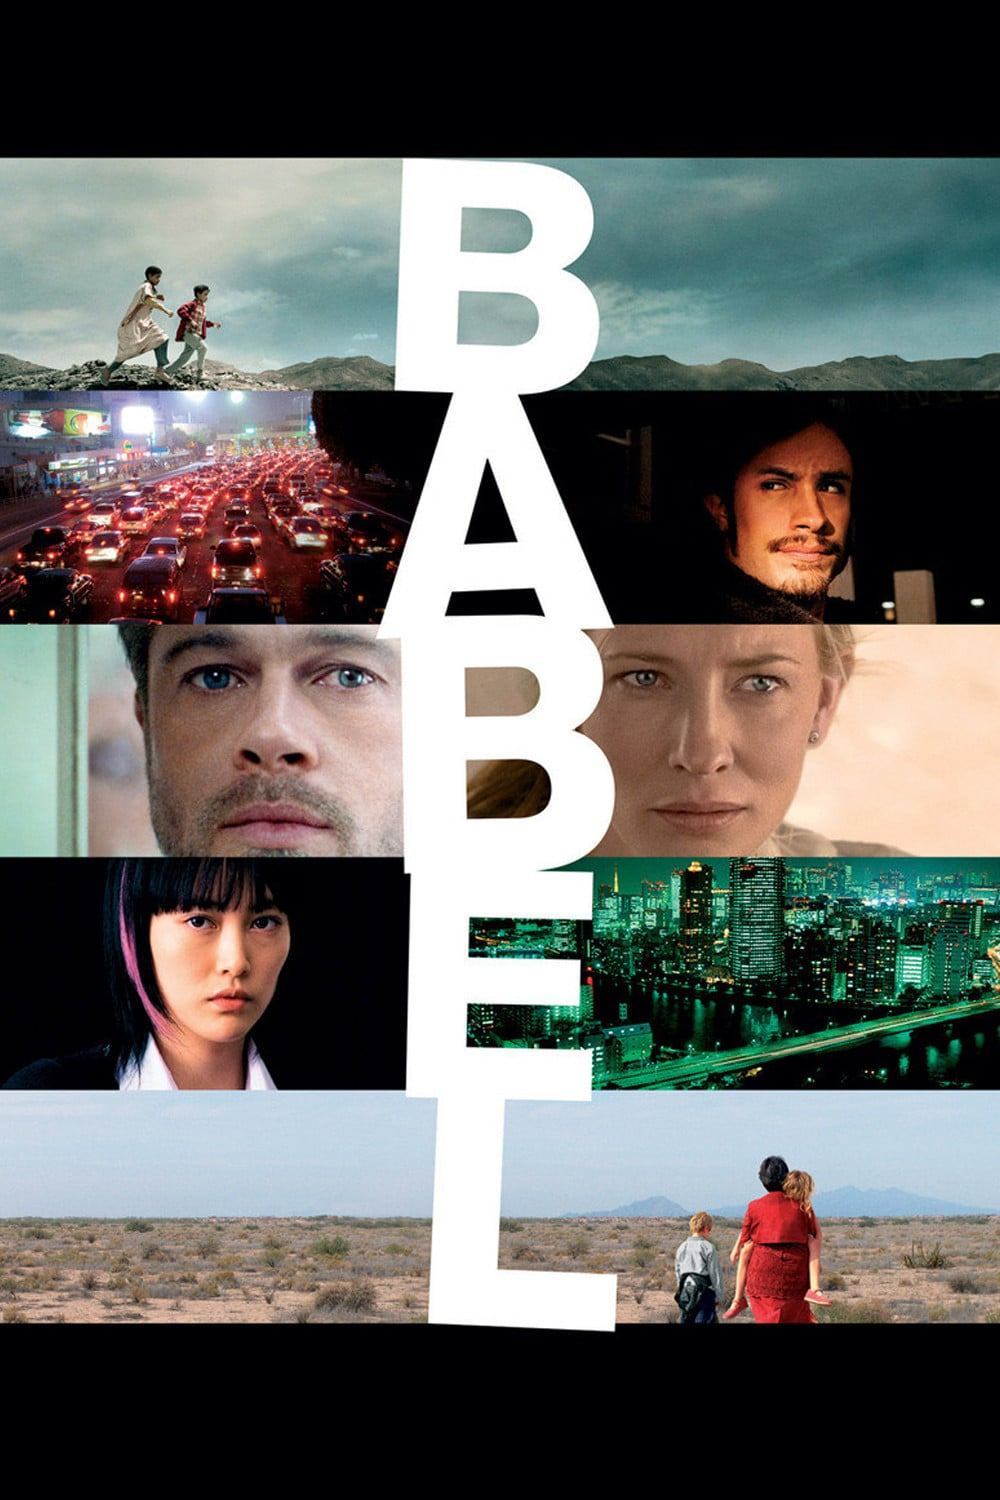 download or watch Babel full movie online free openload